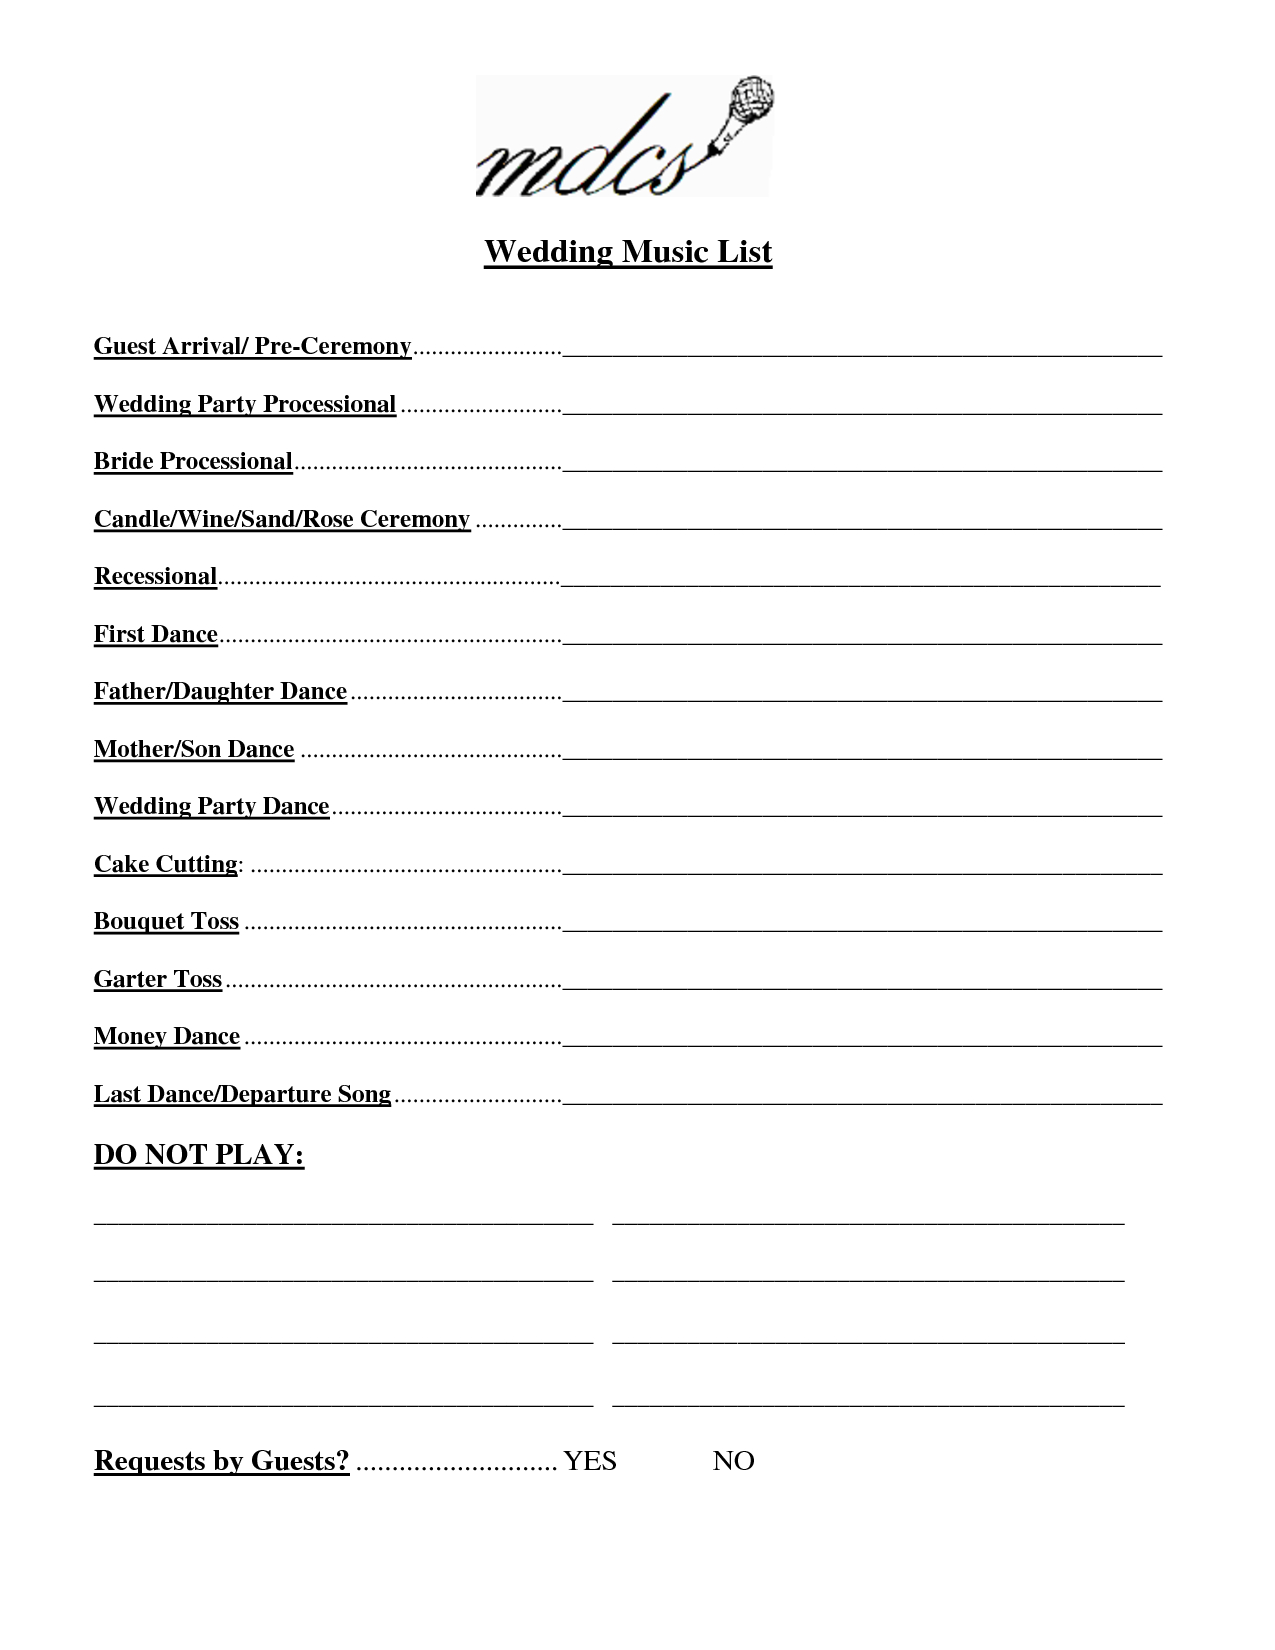 Wedding Party List Template Free | Fosterhaley Wedding Music List - Free Printable Wedding Party List